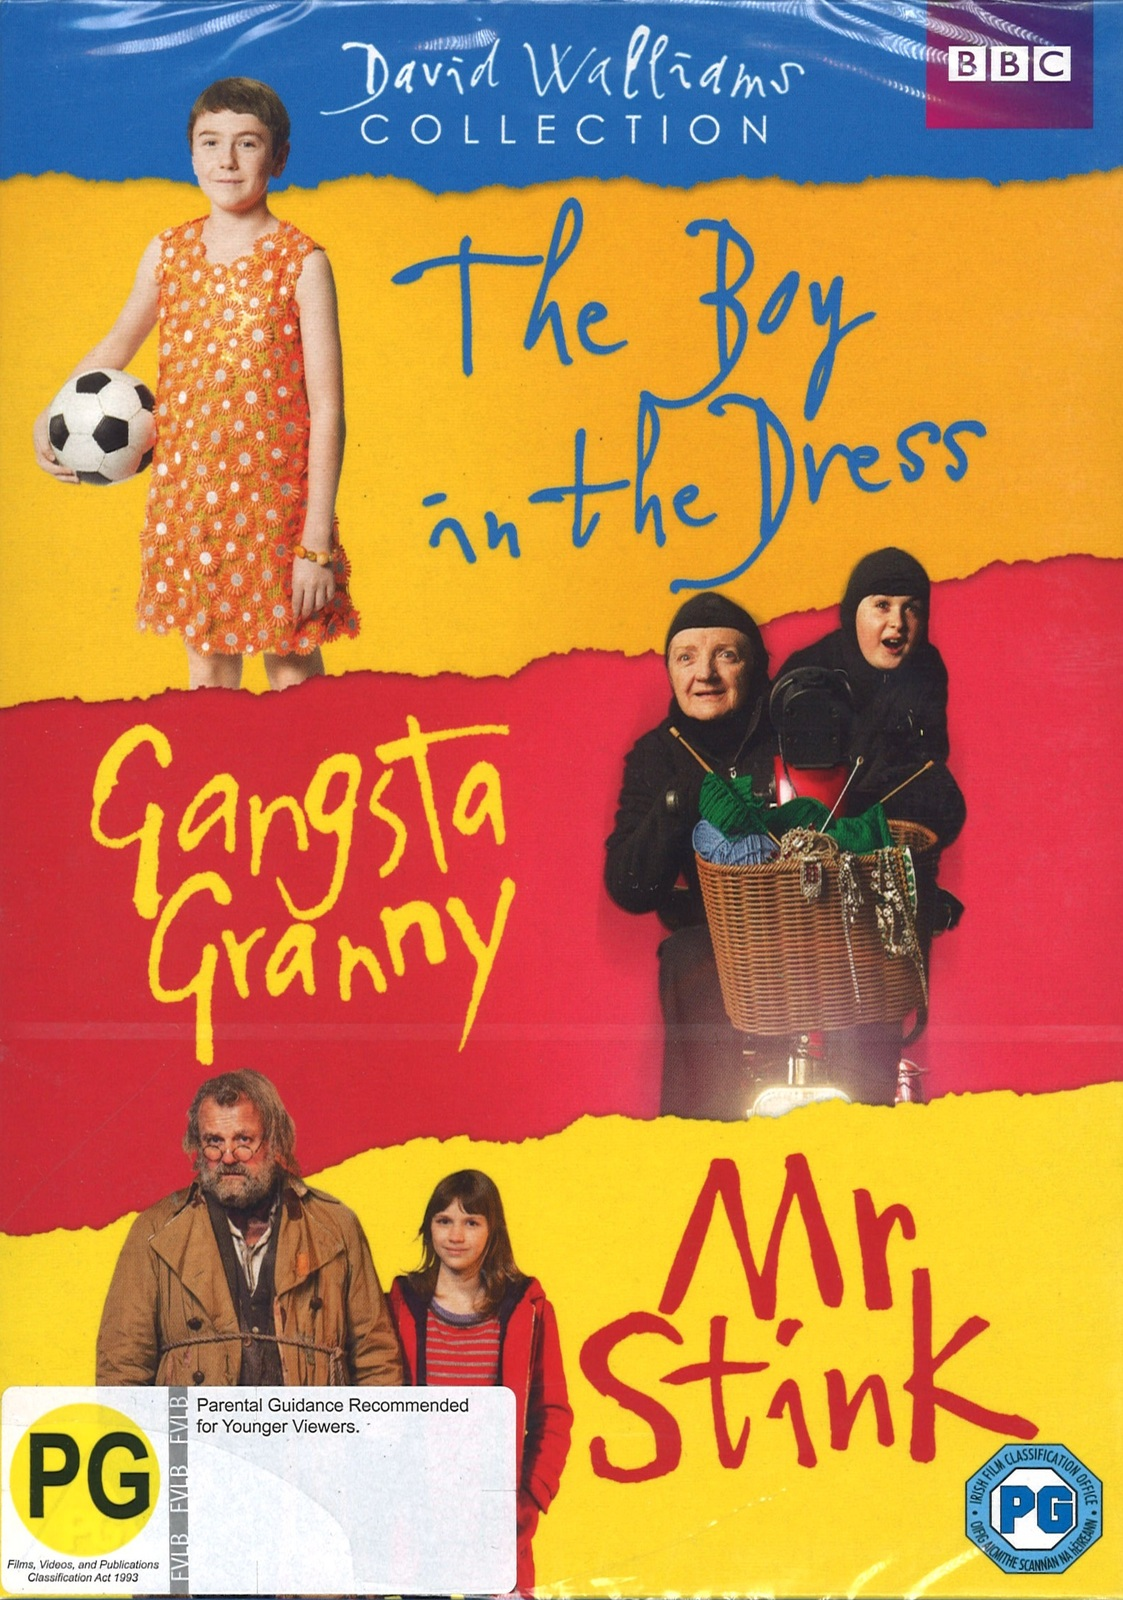 David Walliams Collection The Boy In The Dress Gangsta Granny Mr Stink image